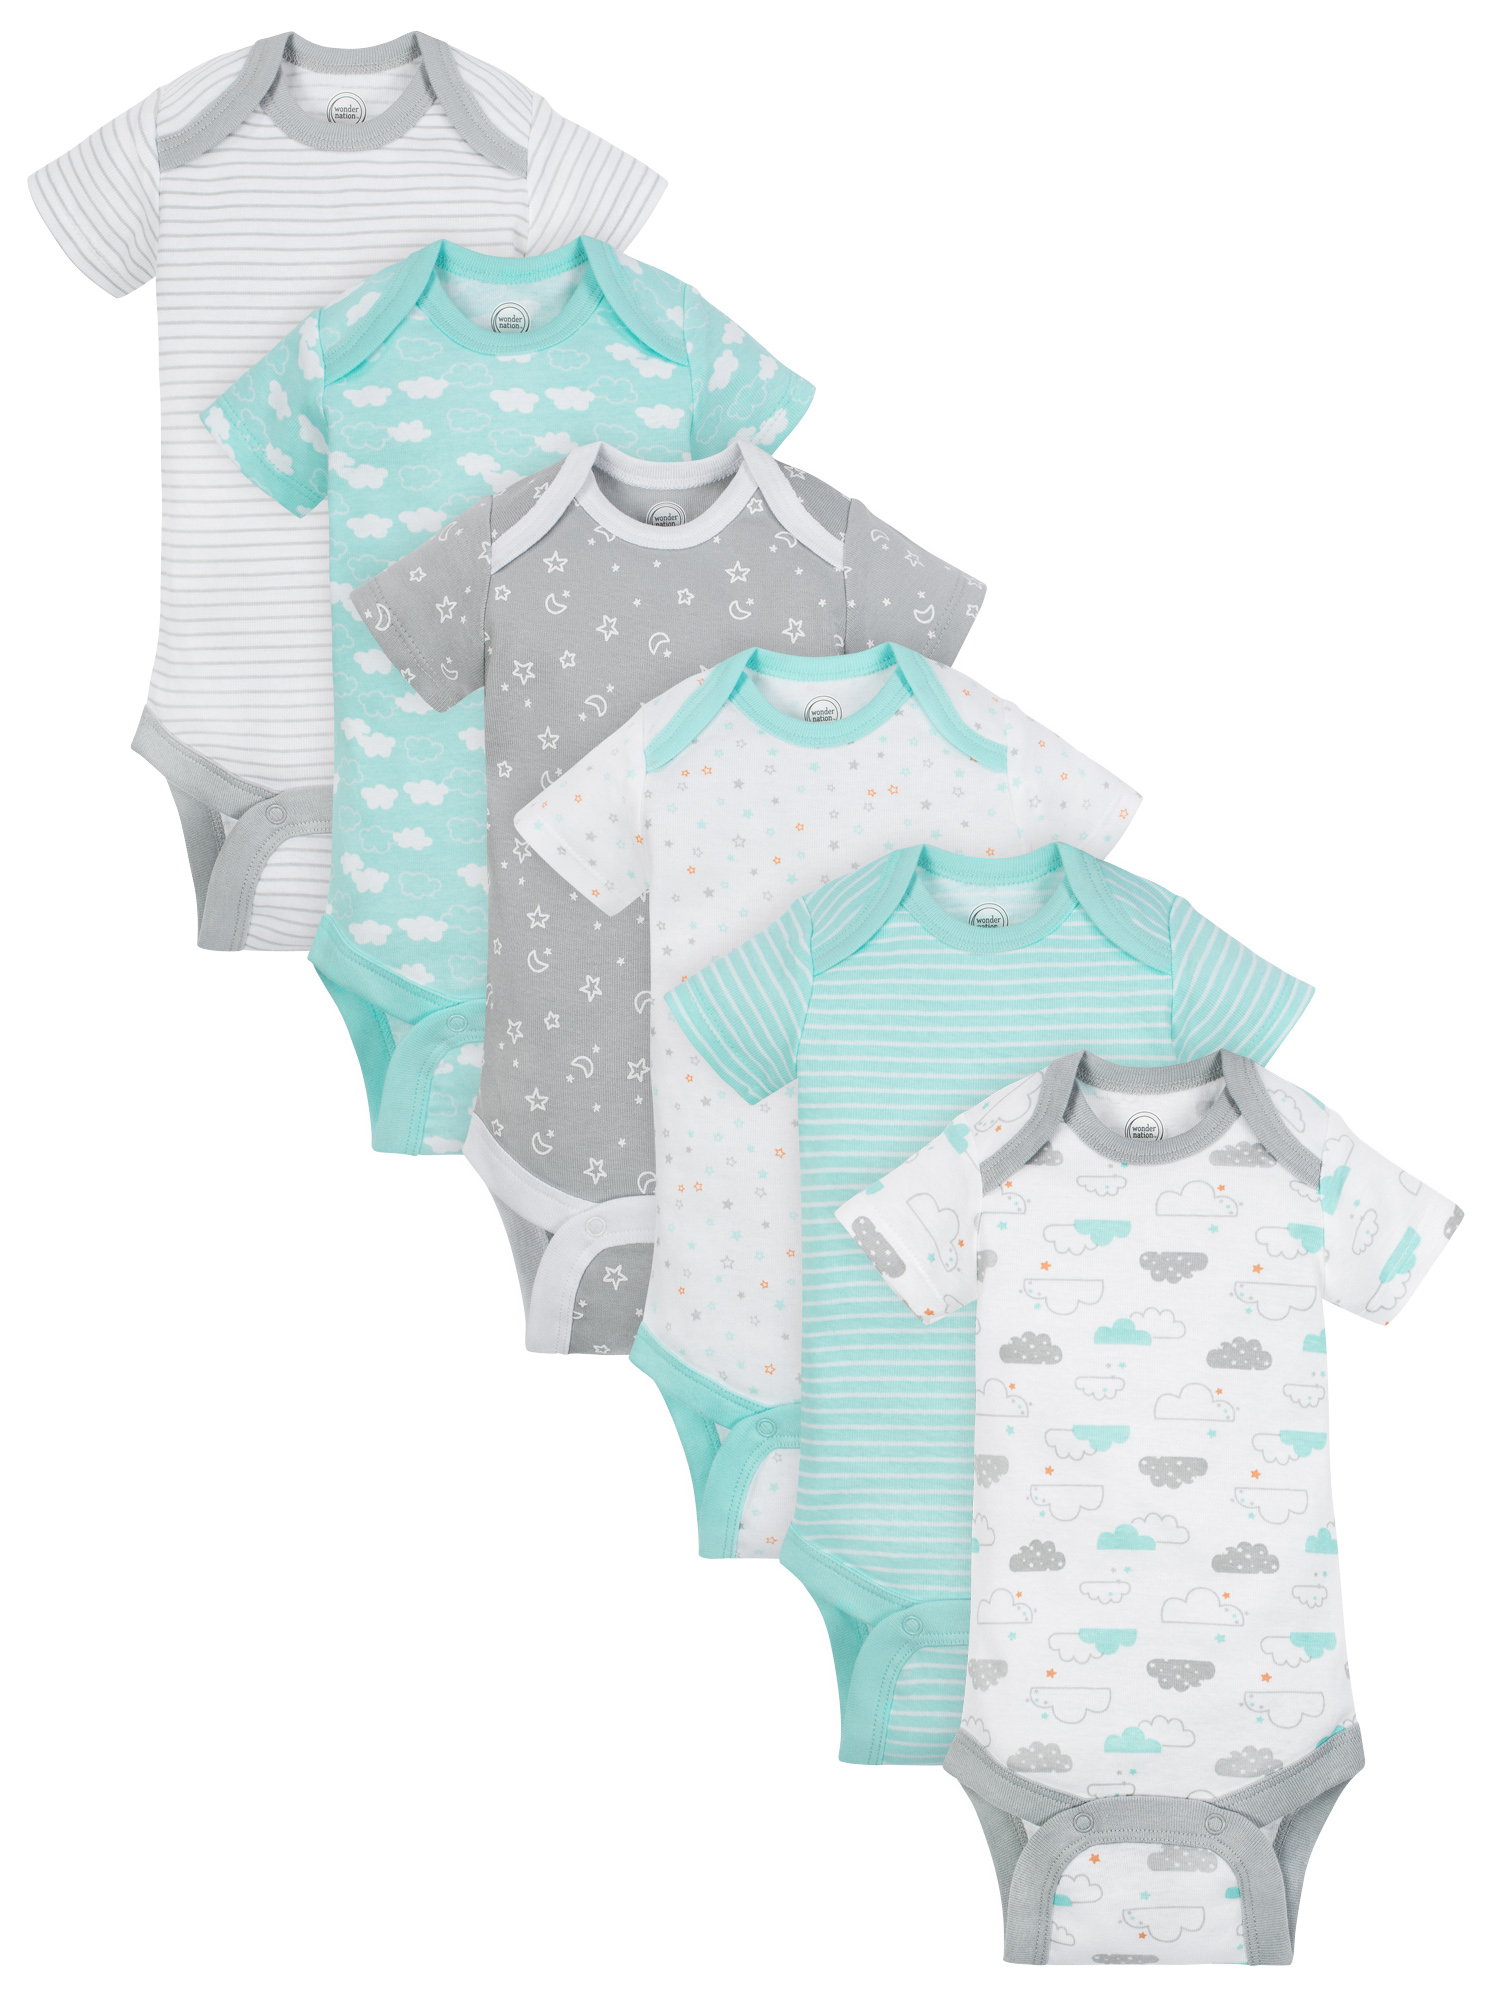 Wonder Nation Short Sleeve Assorted Bodysuits, 6pk (Baby Boys or Baby Girls, Unisex)